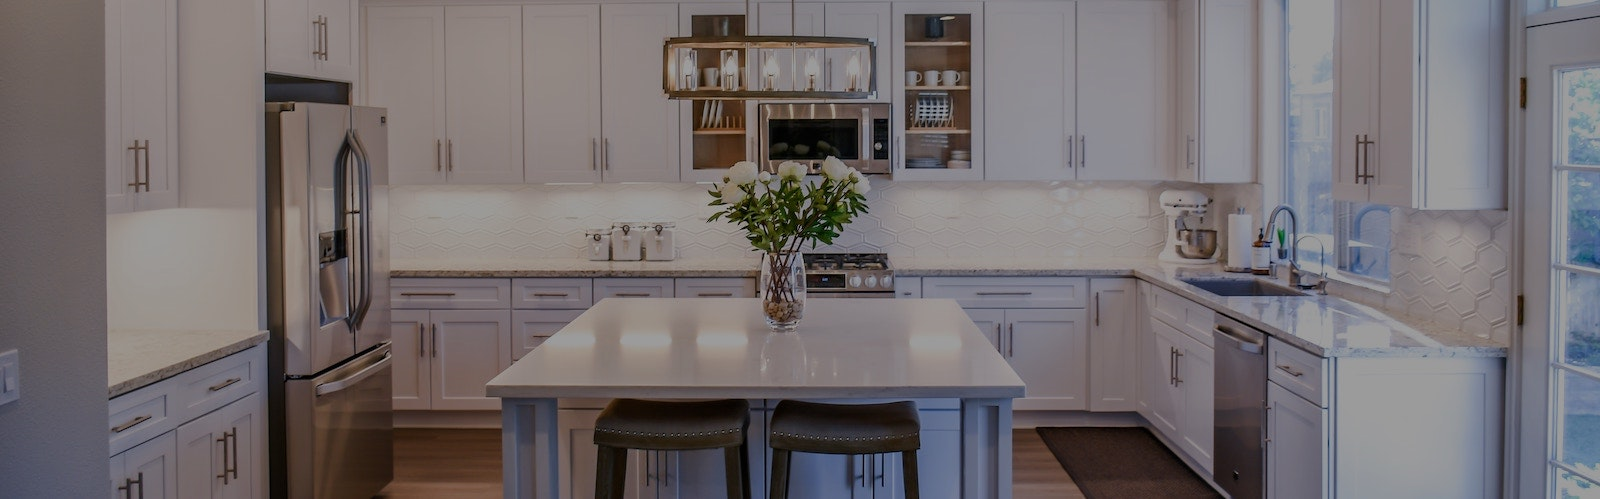 Residential Cleaning Services in Minneapolis | ServiceMaster on transportation minneapolis mn, restaurants minneapolis mn, hotels minneapolis mn, weather minneapolis mn,